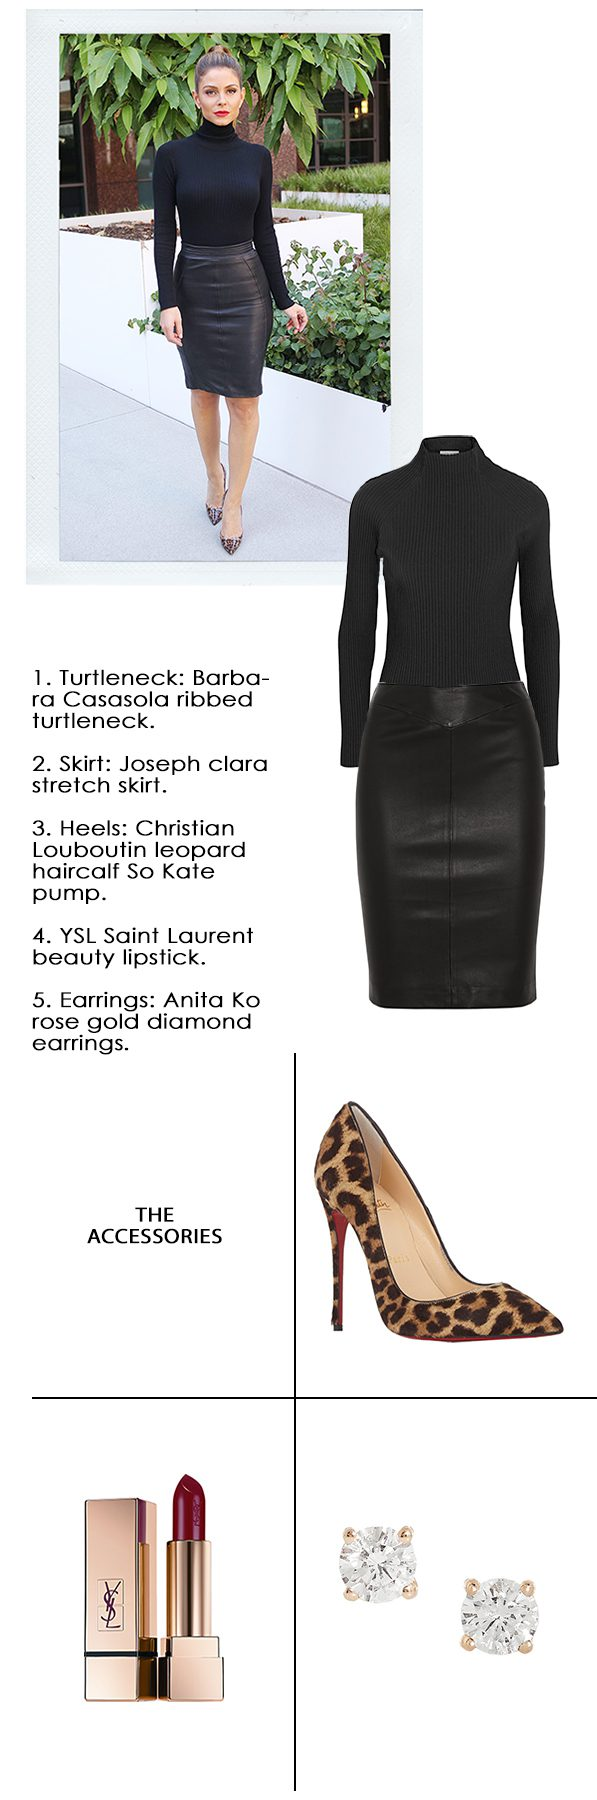 Get the Look: Chic Leather Skirts